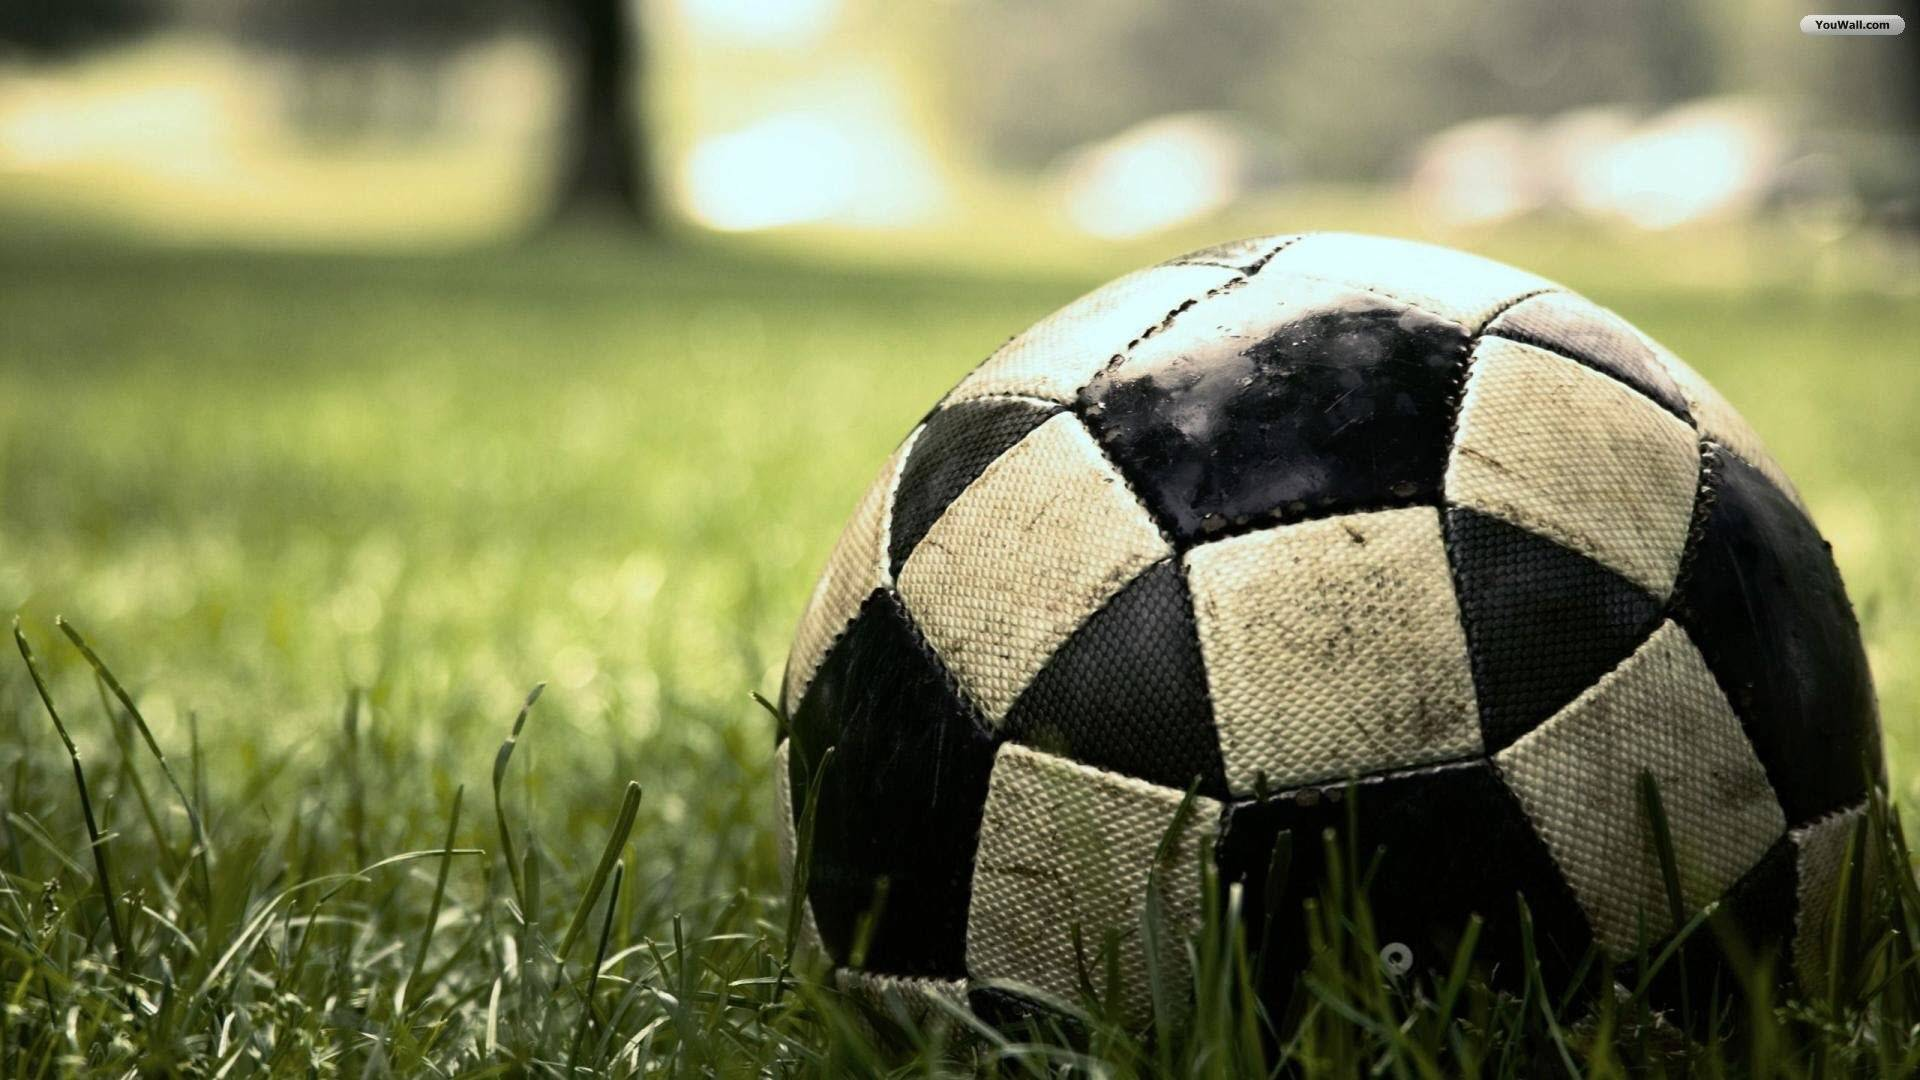 HD Soccer Wallpapers